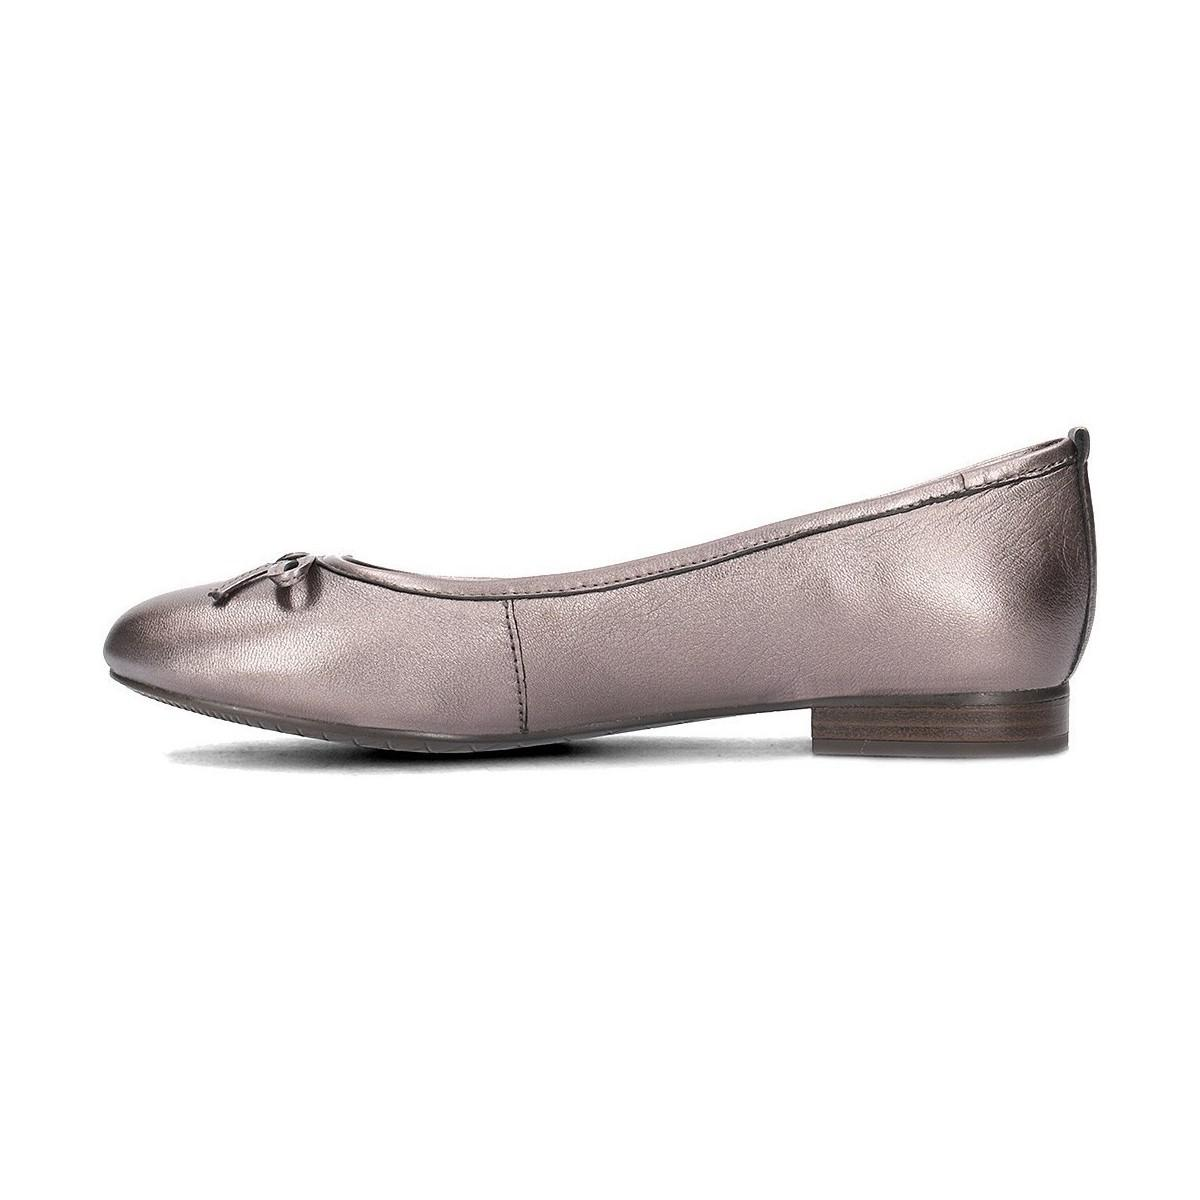 Women's In Shoes Ballerinas pumps Silver Tamaris in 12211421916 f7awq6S